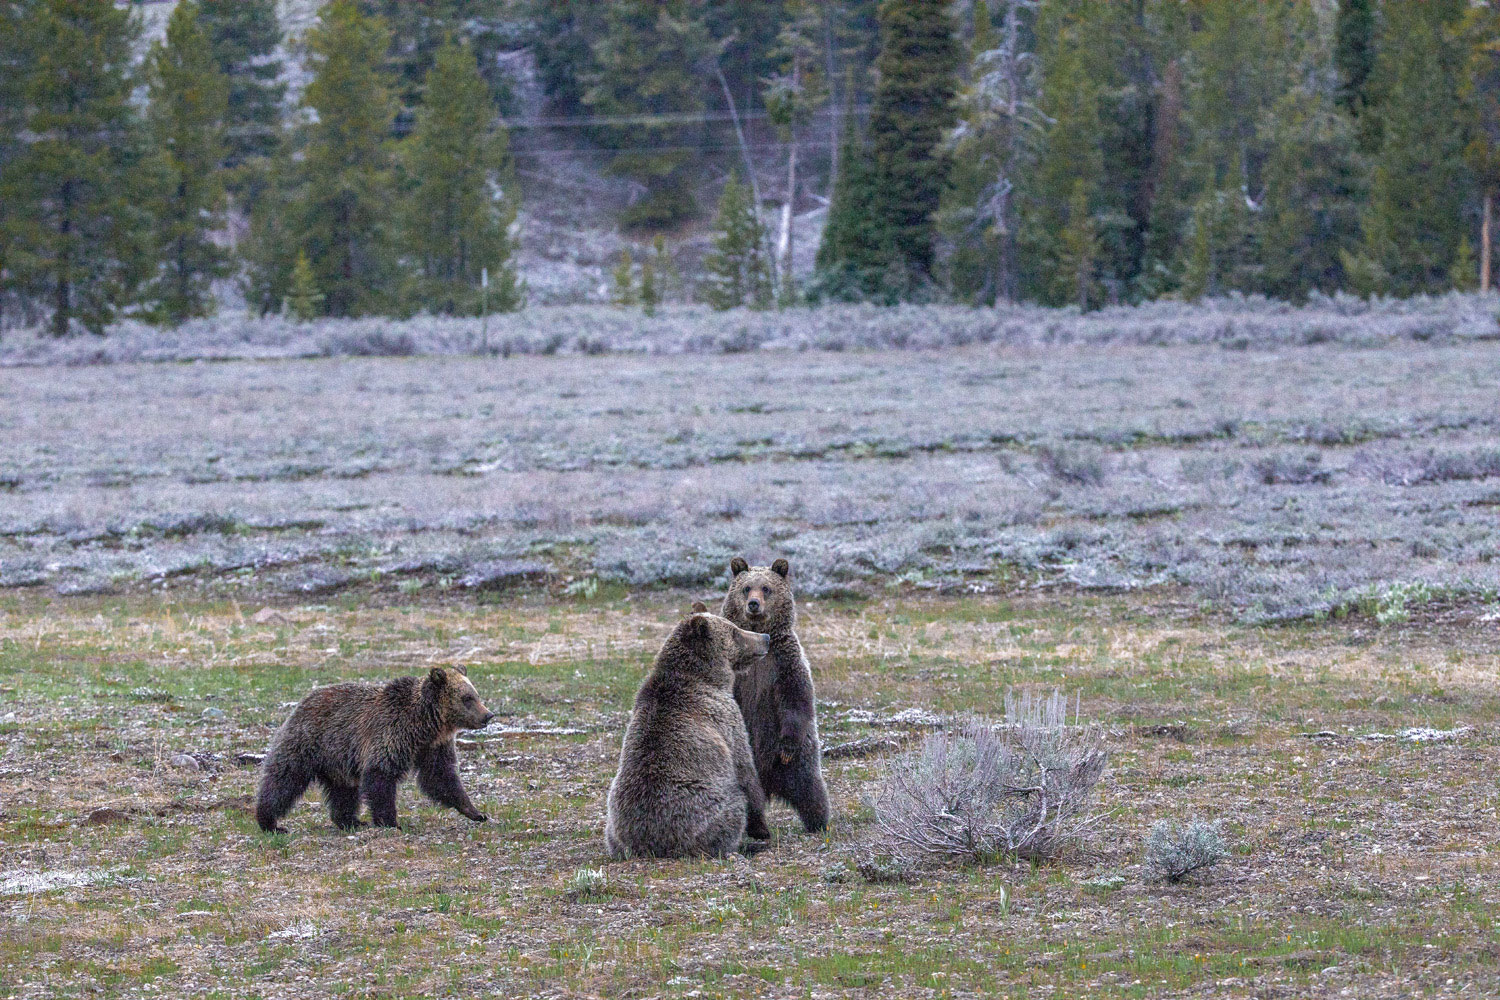 A grizzly named Blondie huddles with her two subadult cubs in the early light before sunrise.